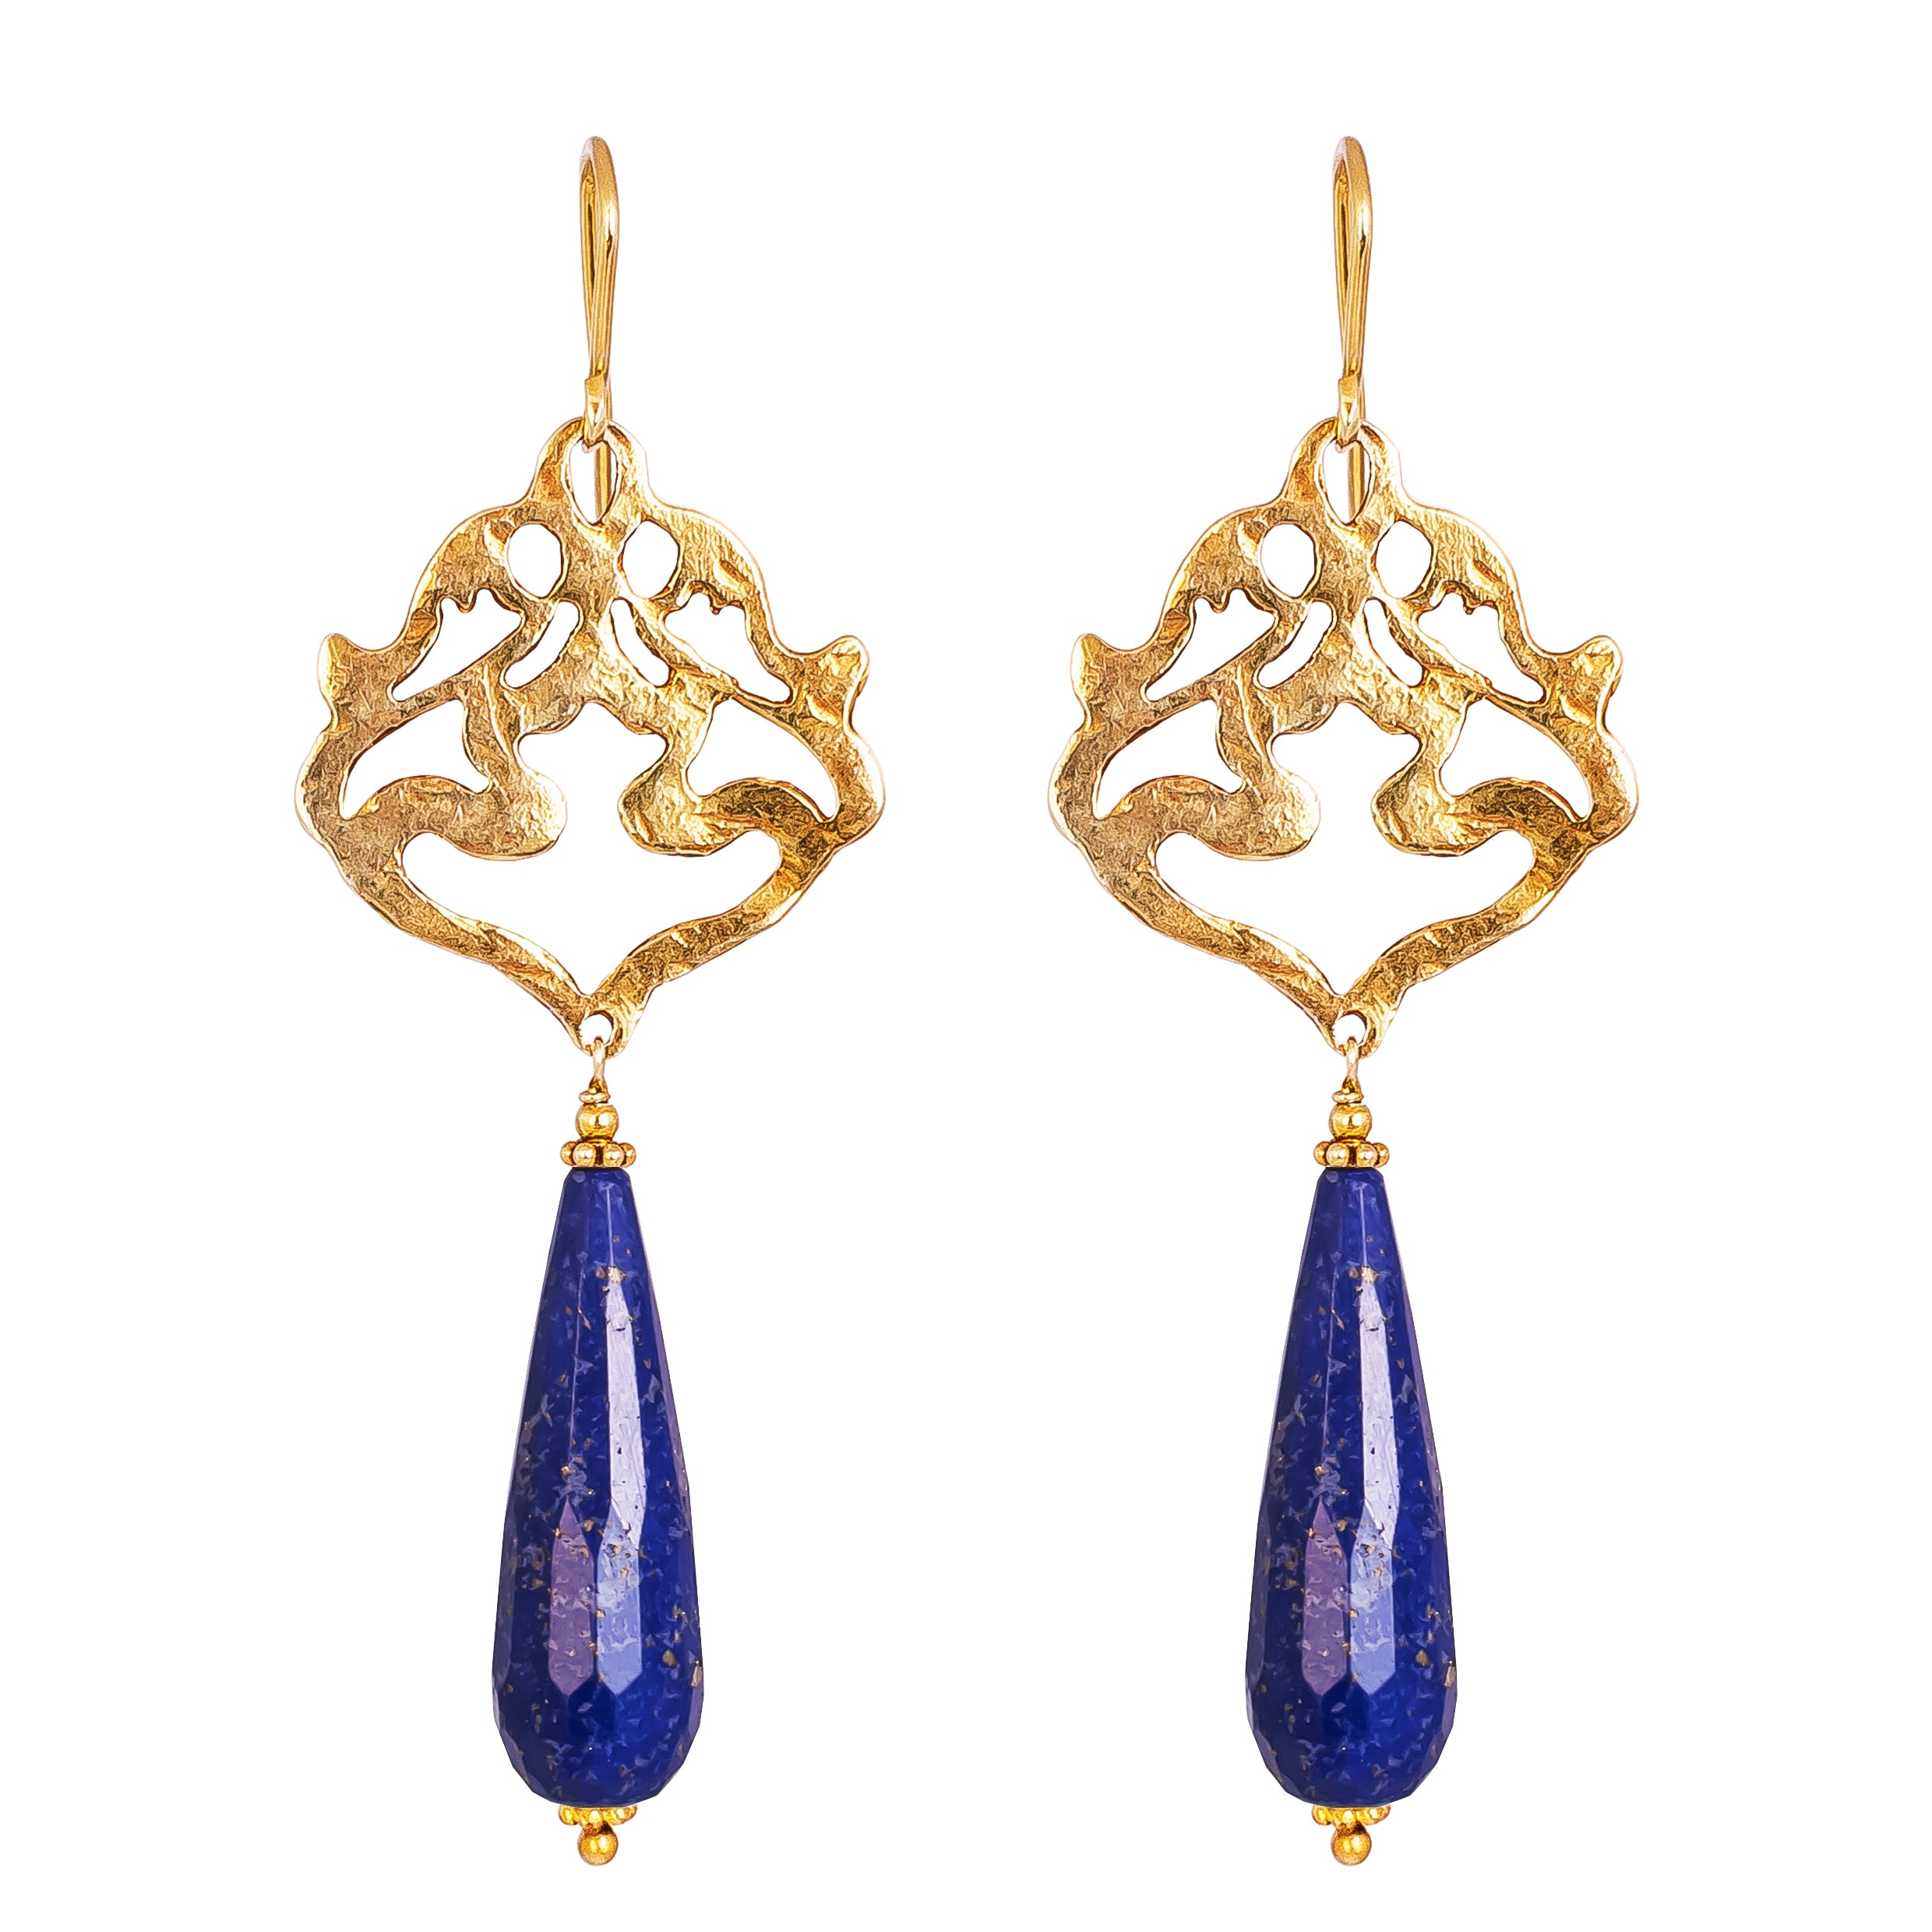 Flamingo Earrings | Hammered Gold With Faceted Lapis Detail